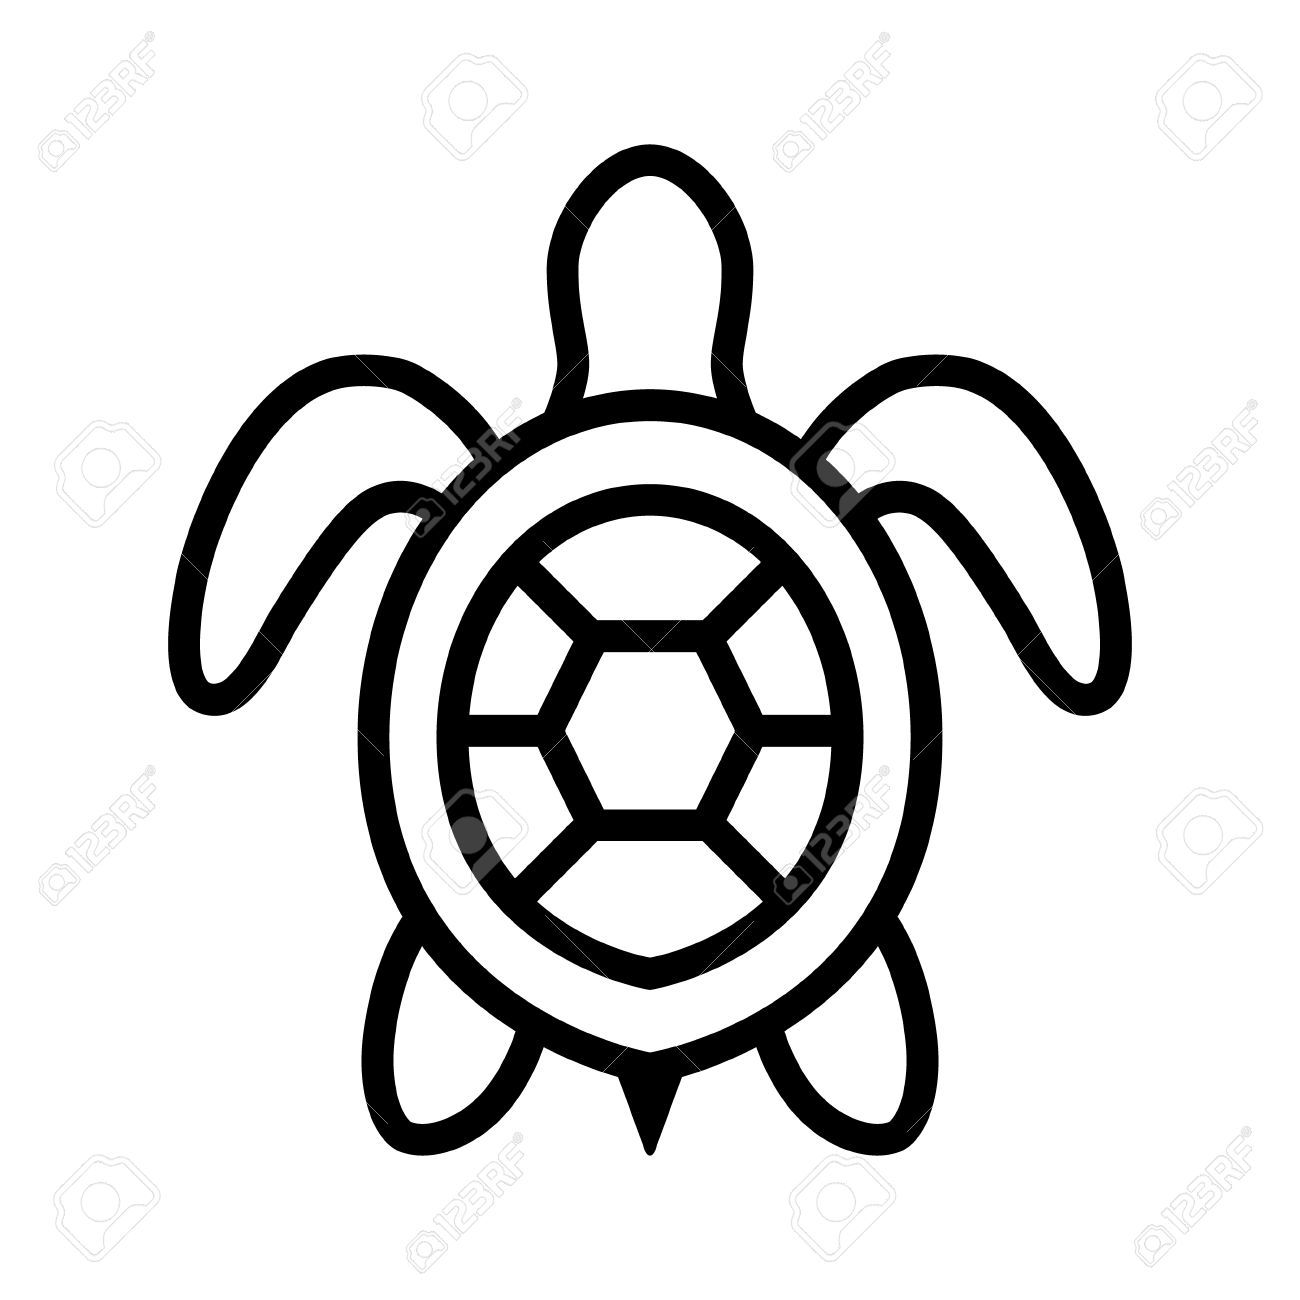 Blackline clipart turtle image black and white Turtle Clipart Black And White | Free download best Turtle Clipart ... image black and white